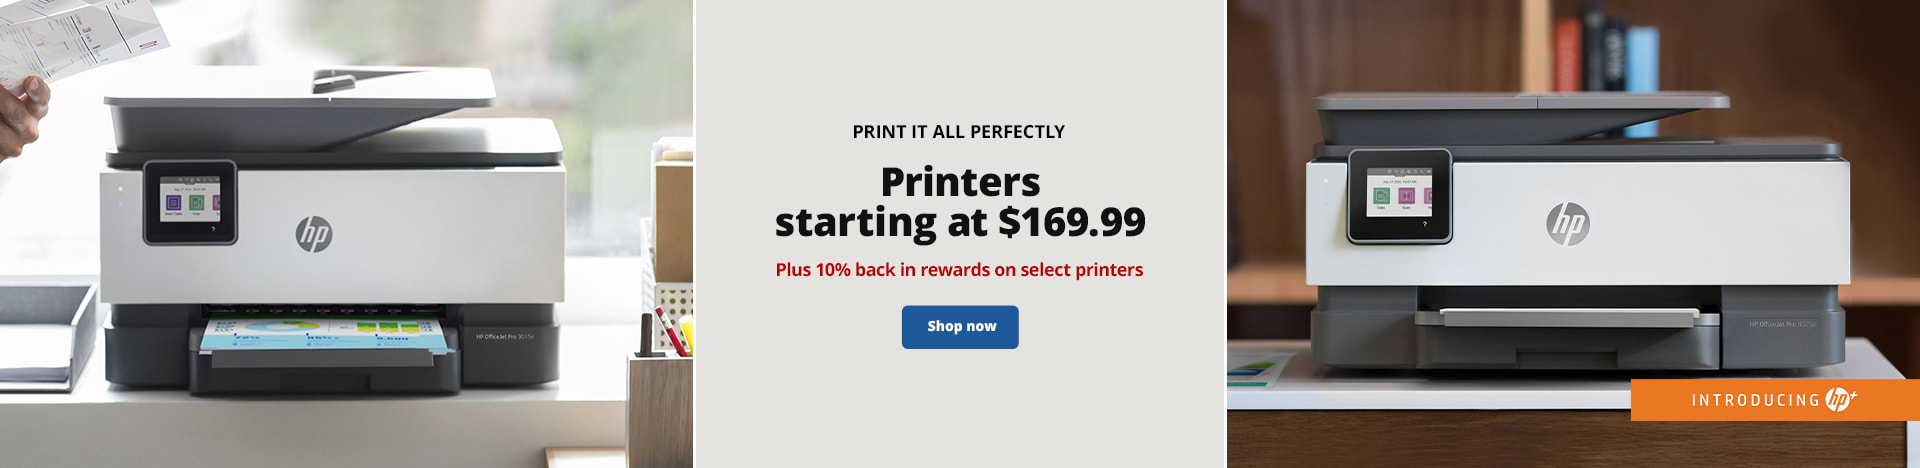 Print It All Perfectly. Printers starting at $169.99 Plus 10% back in rewards on select printers